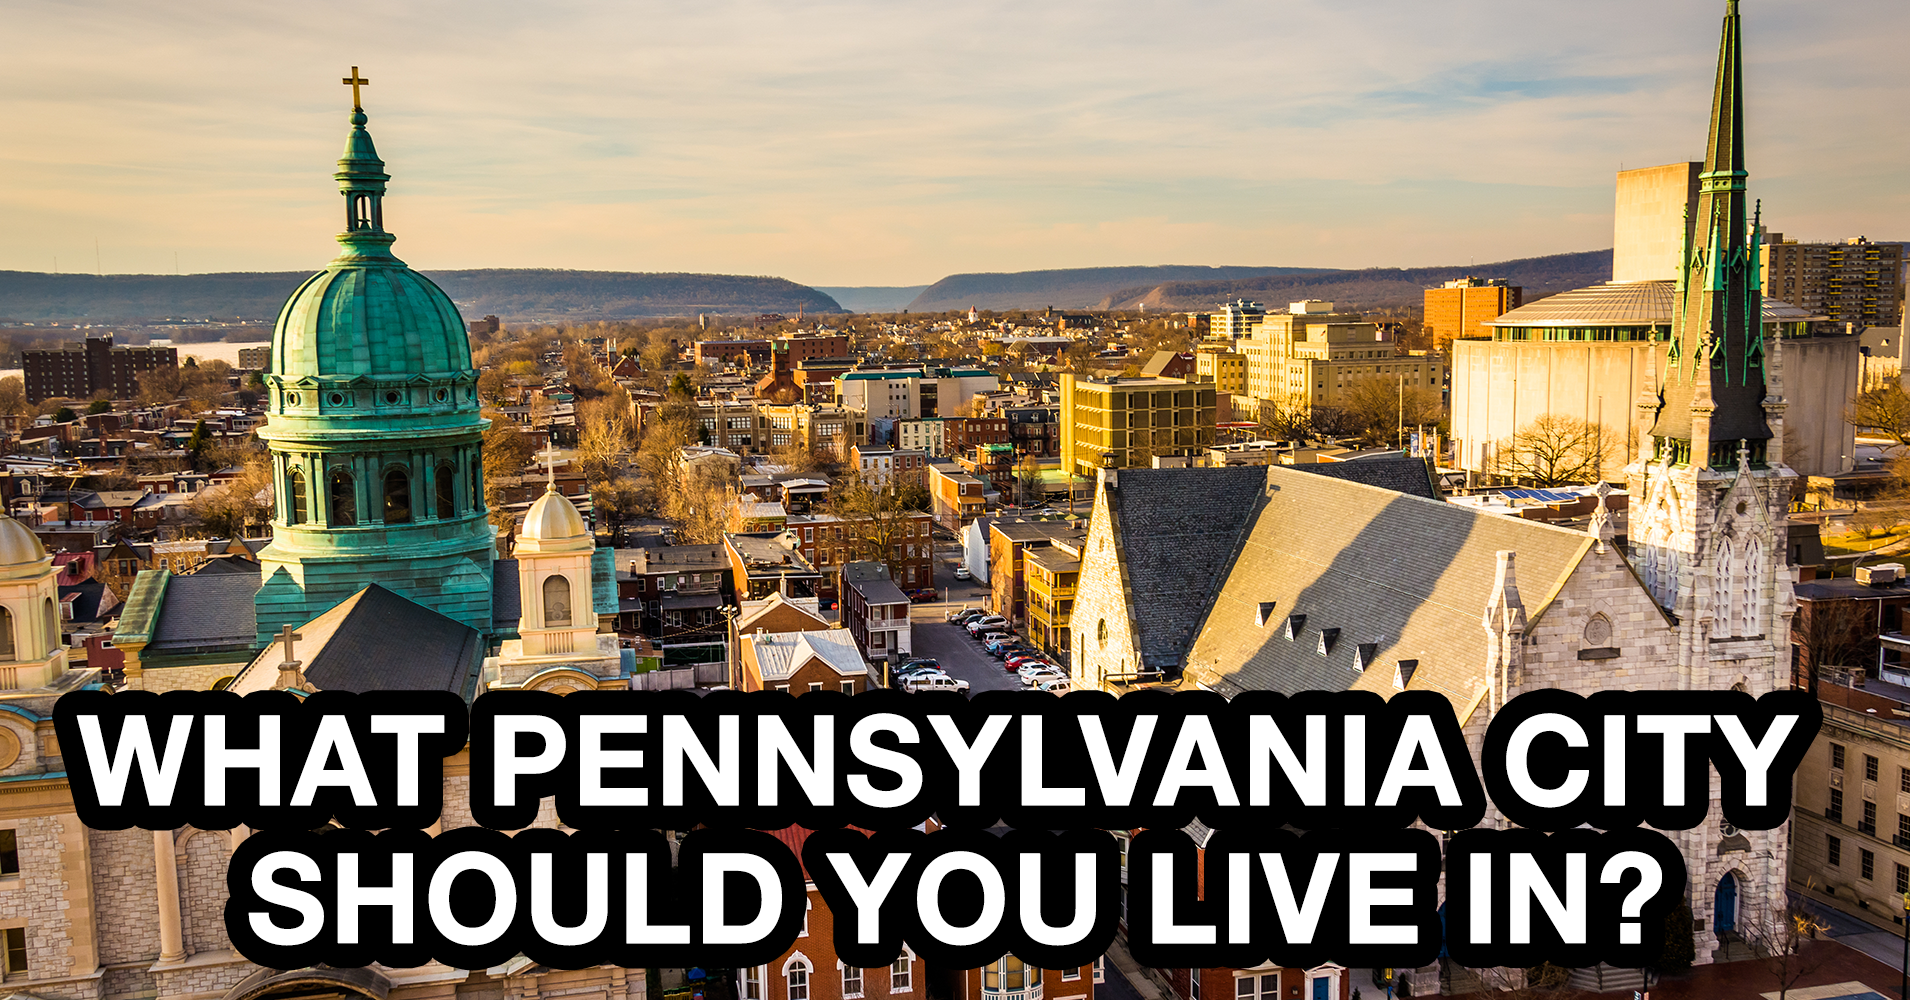 Which City in Pennsylvania Should You Live In? - Quiz - Quizony.com